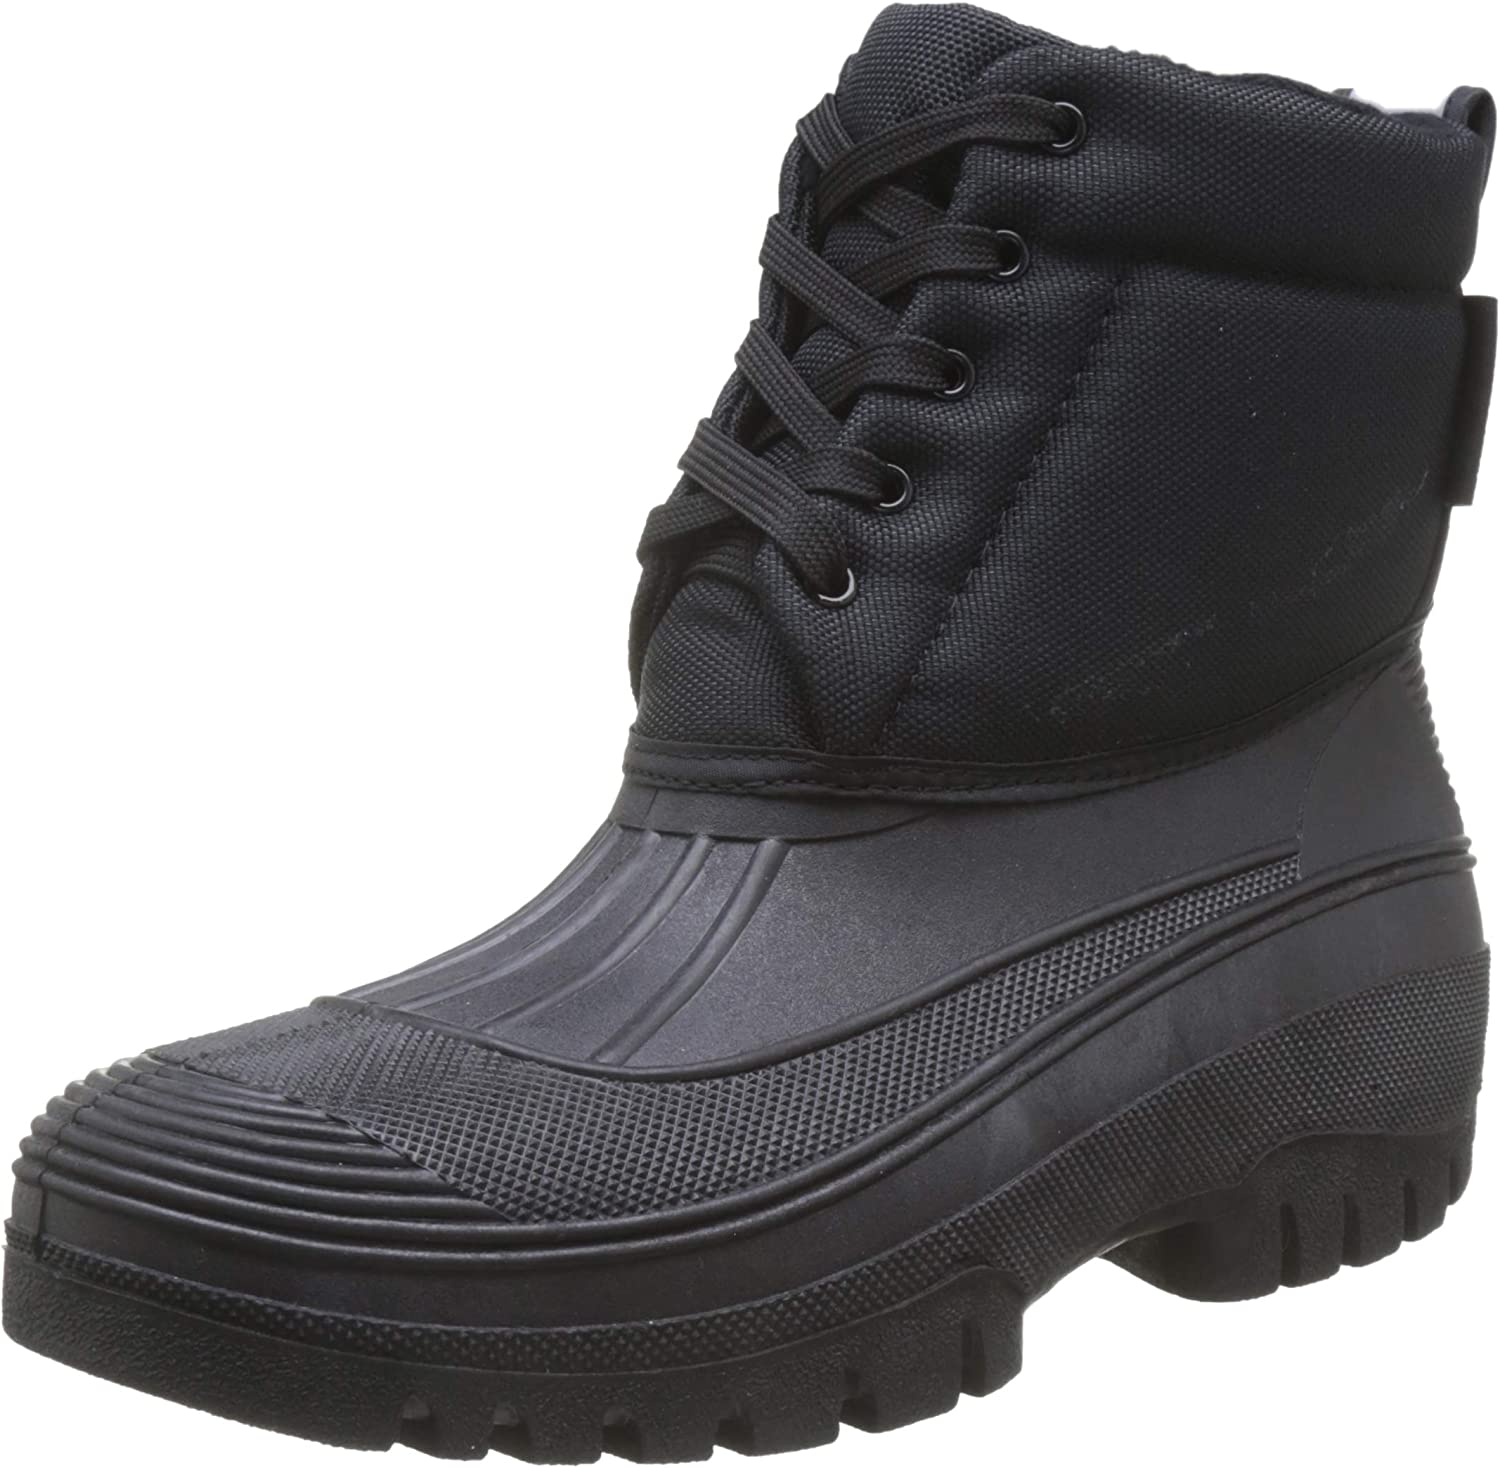 HKM Pull On Horse Riding Equestrian Winter Yard Stable Fleece Lined Mucker Boots